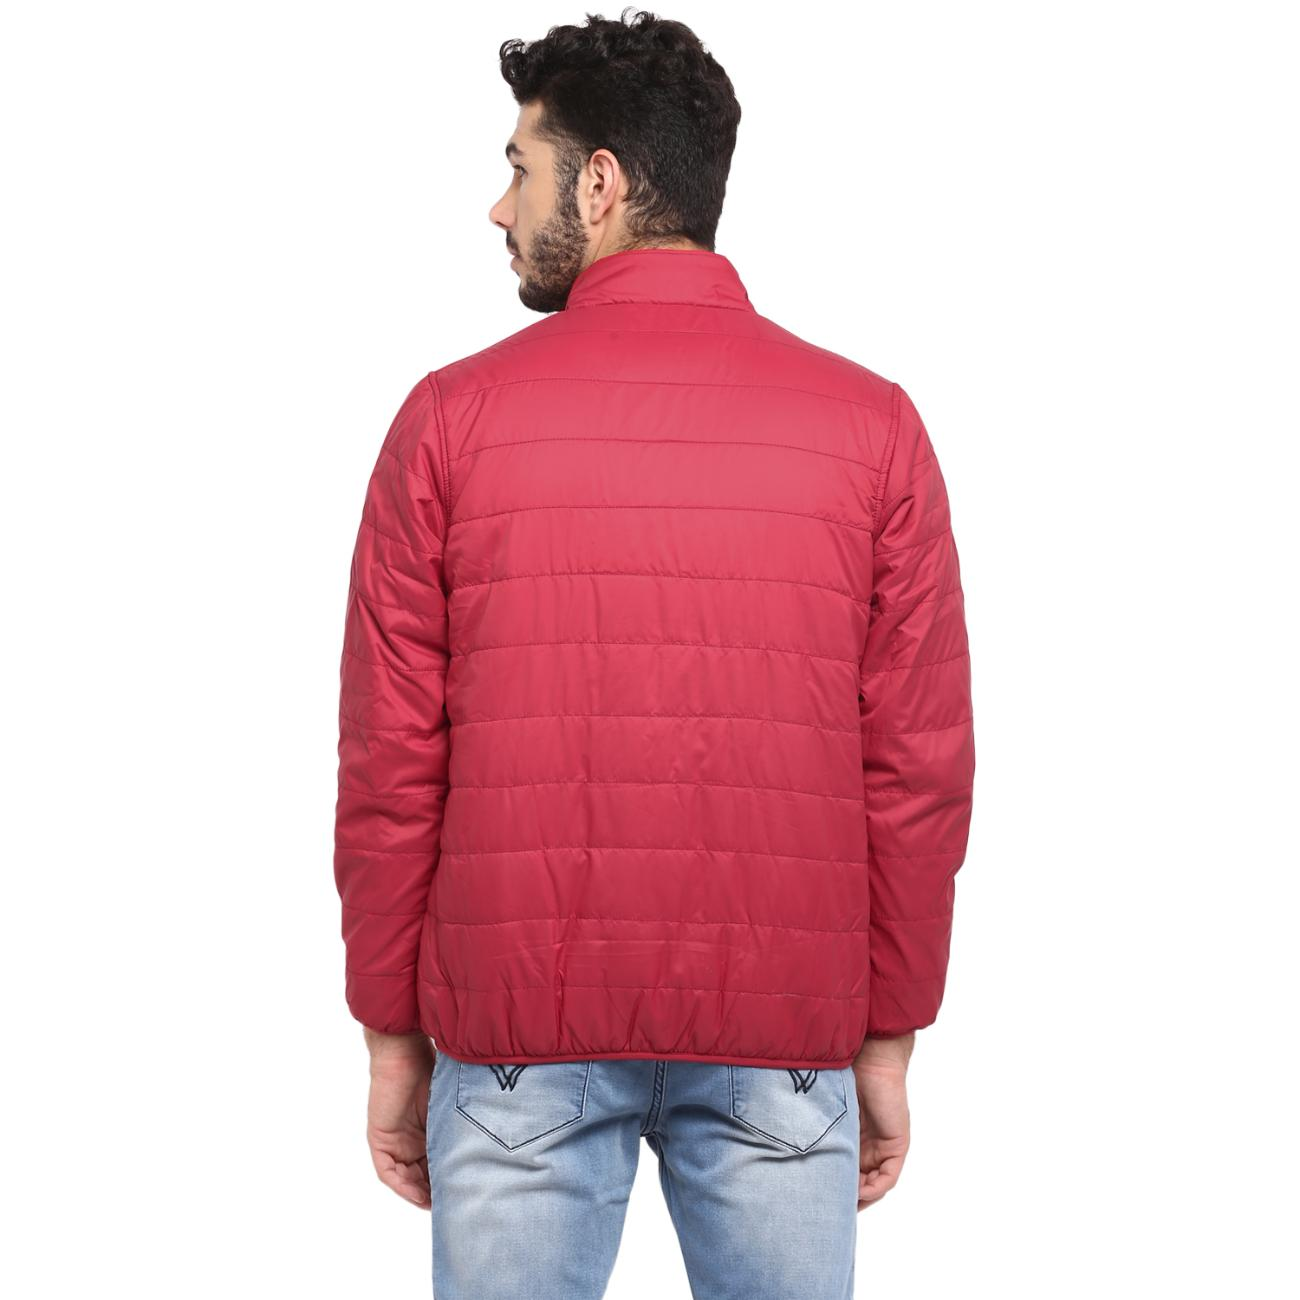 Red Chief's Red Jacket For Men